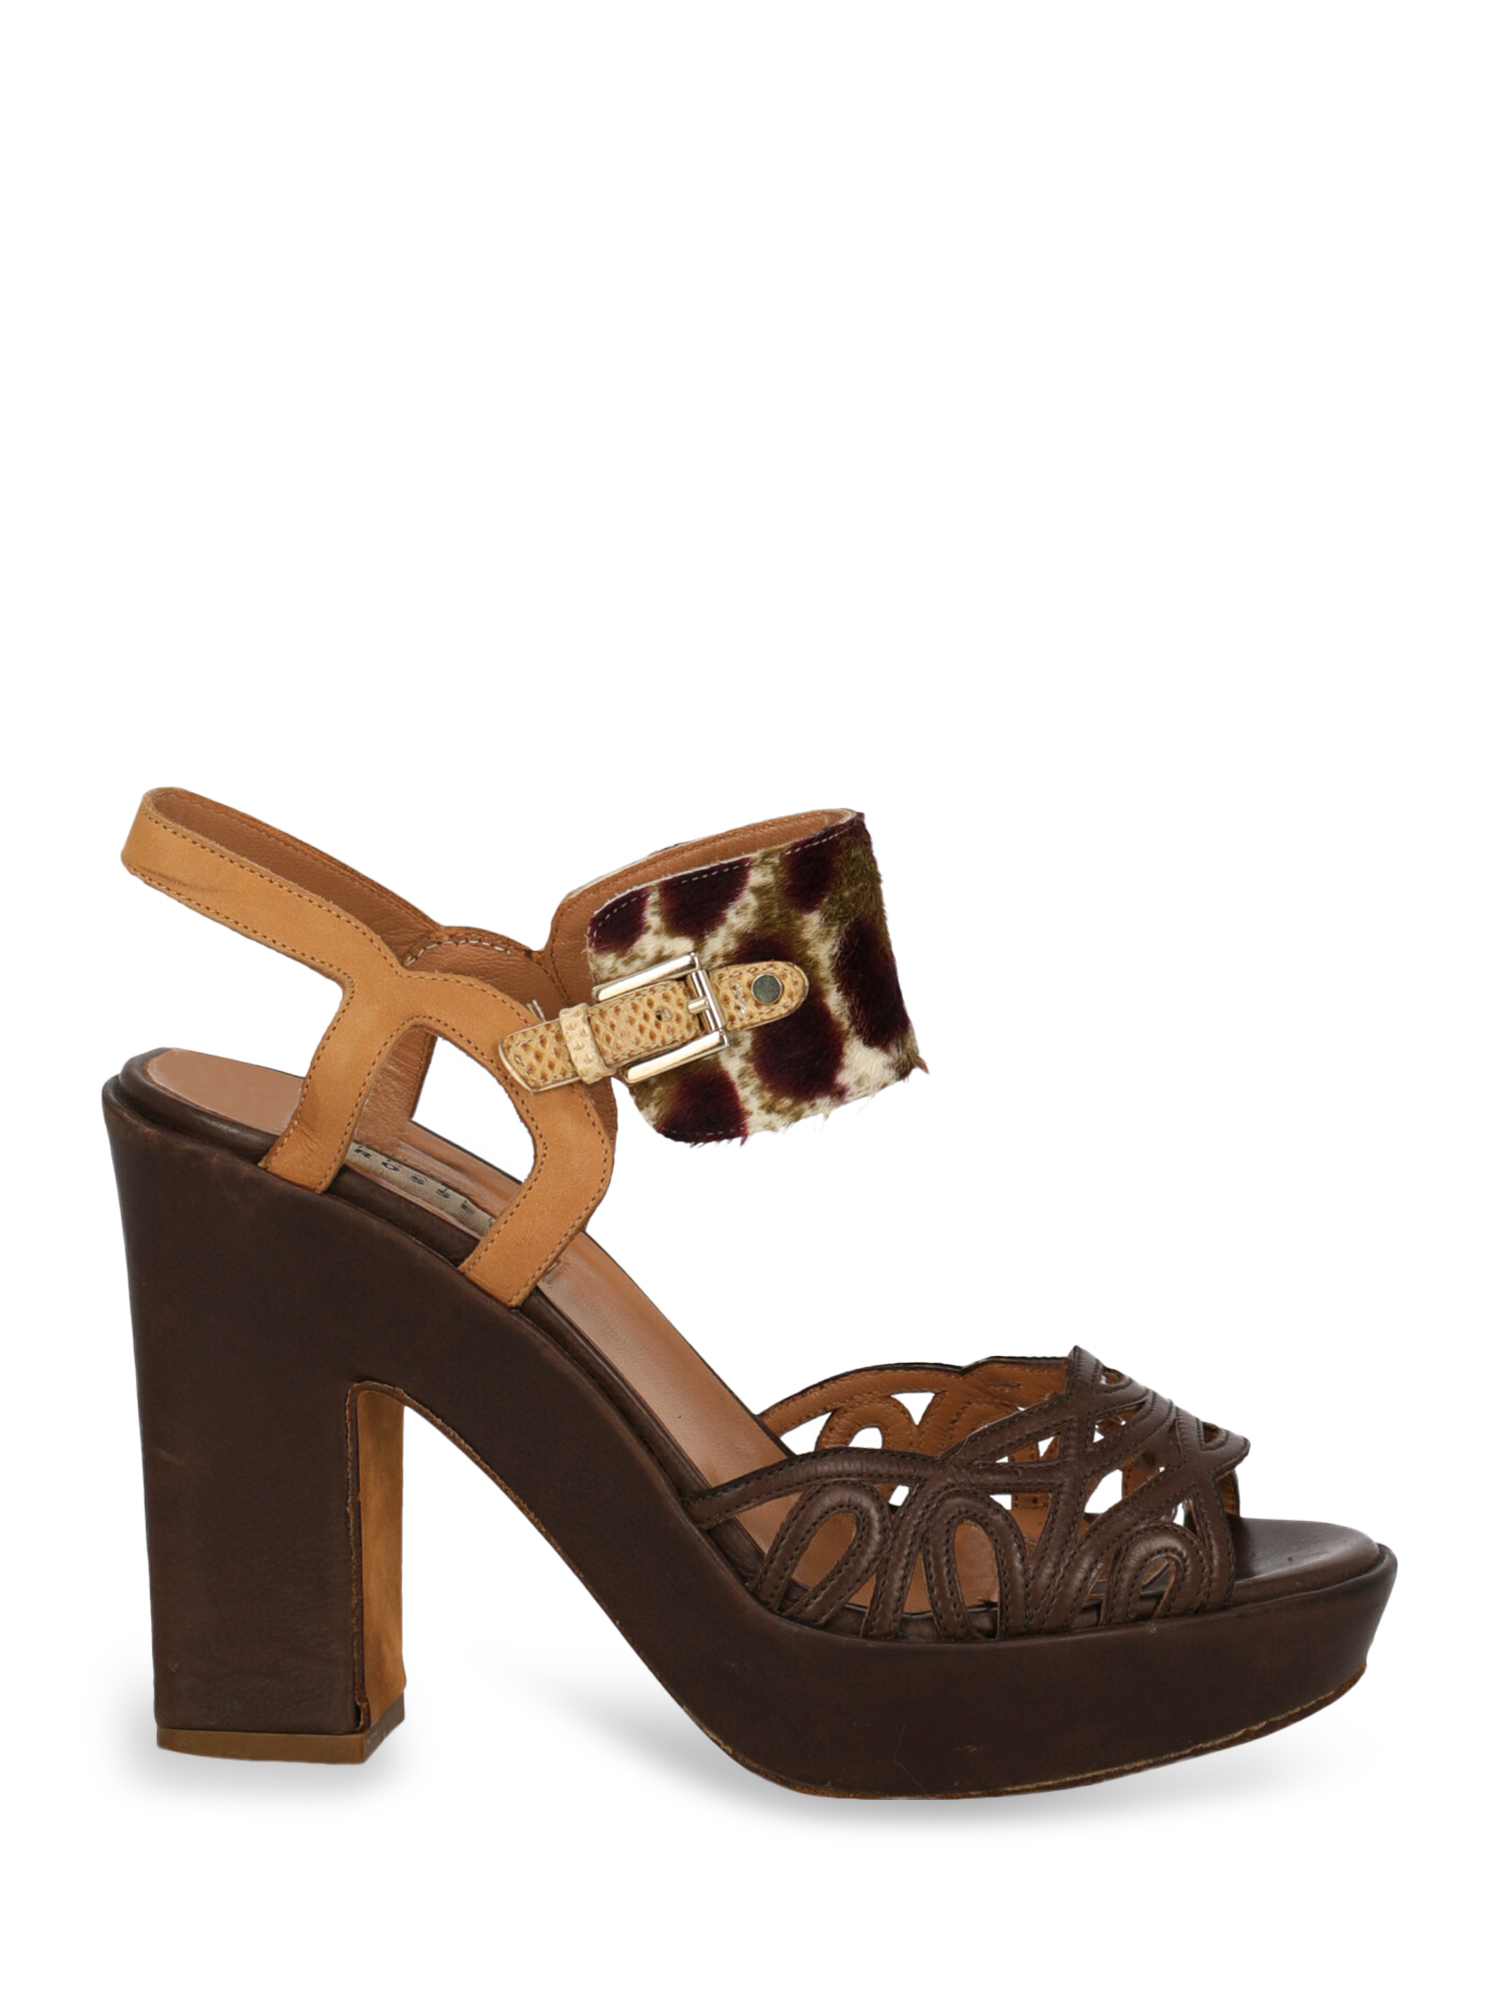 Pre-owned Fratelli Rossetti Shoe In Brown